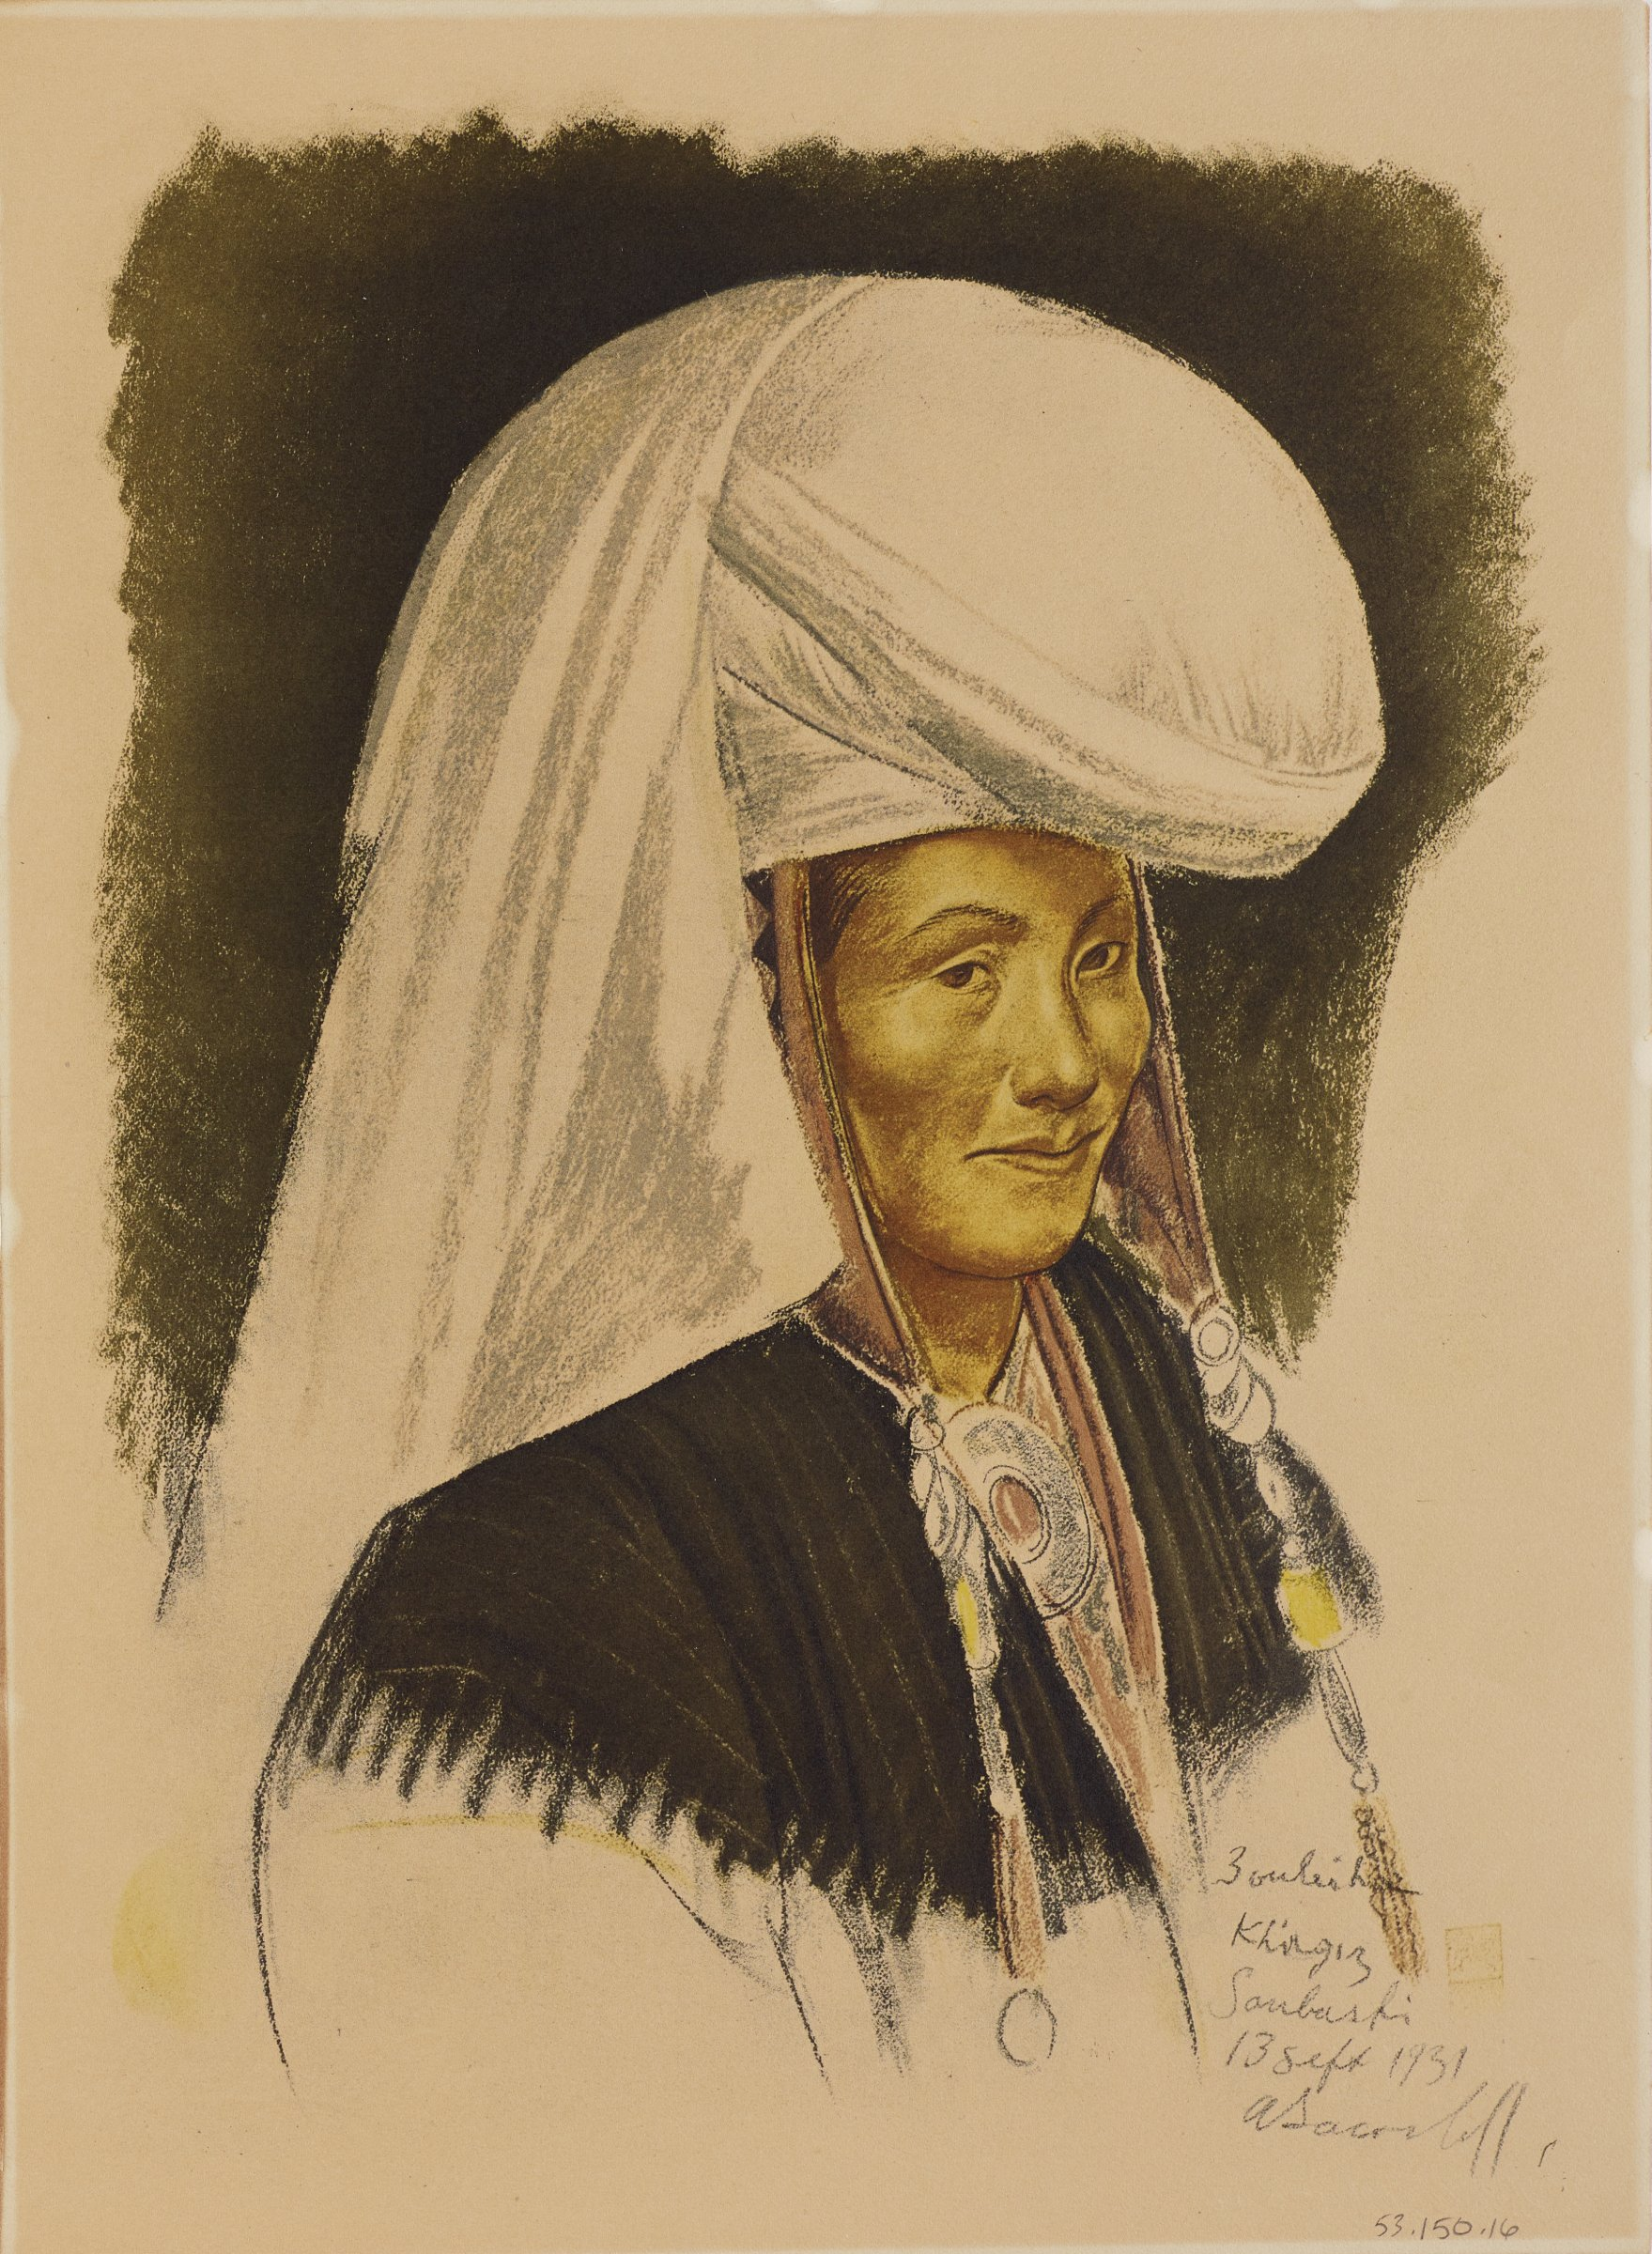 Bust portrait of a male figure with a large white turban adorned with beads hanging from the sides. He wears a necklace with a circlular pendant. His body is turned to the right as he faces the viewer. This series is a product of Jacovleff's involvement in the Expédition Citroën Centre-Asie.